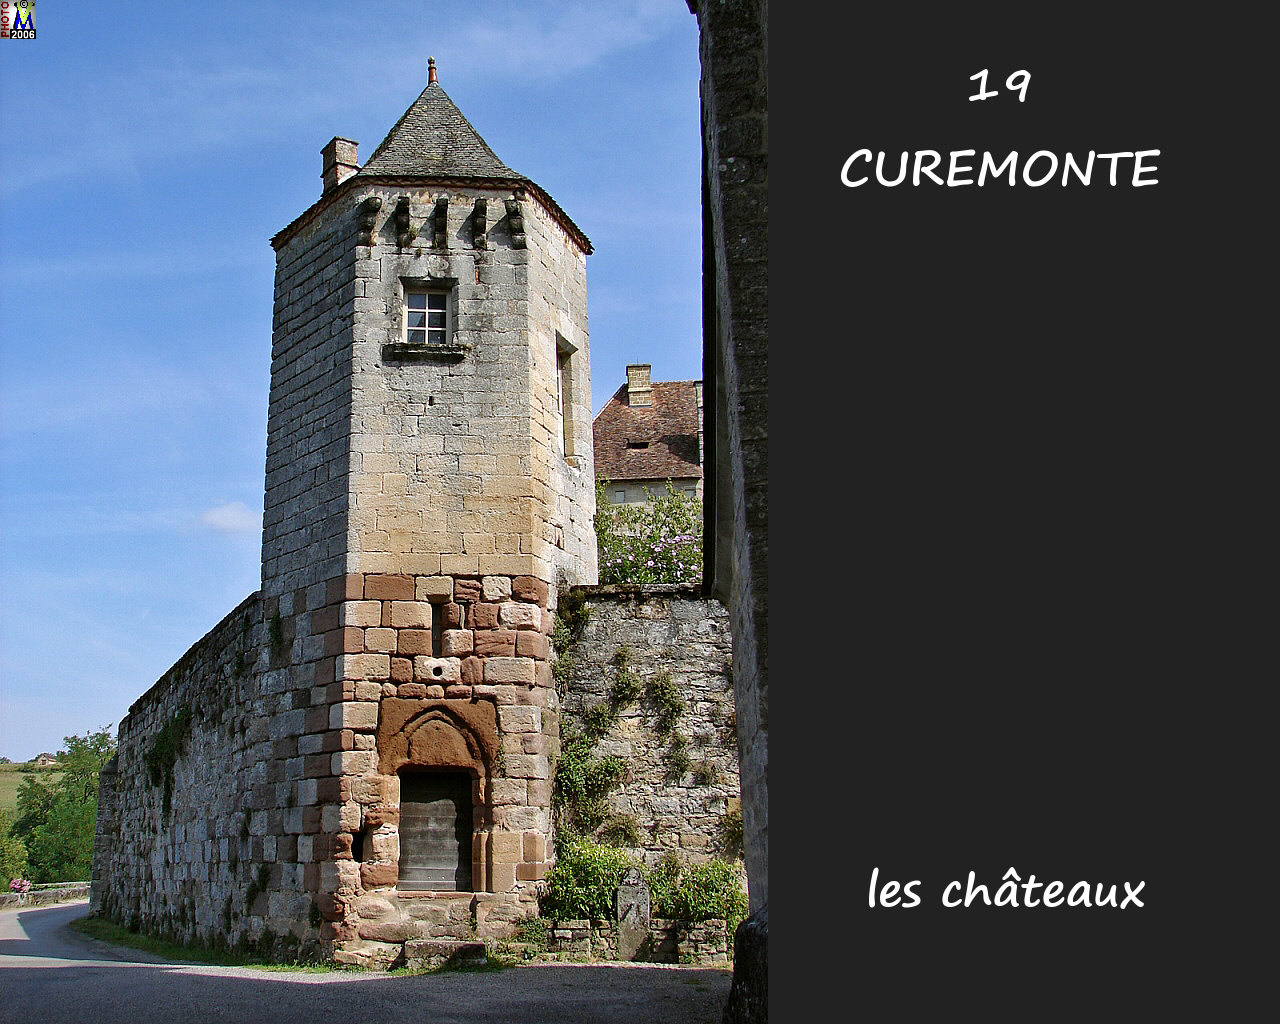 19CUREMONTE_chateau_134.jpg